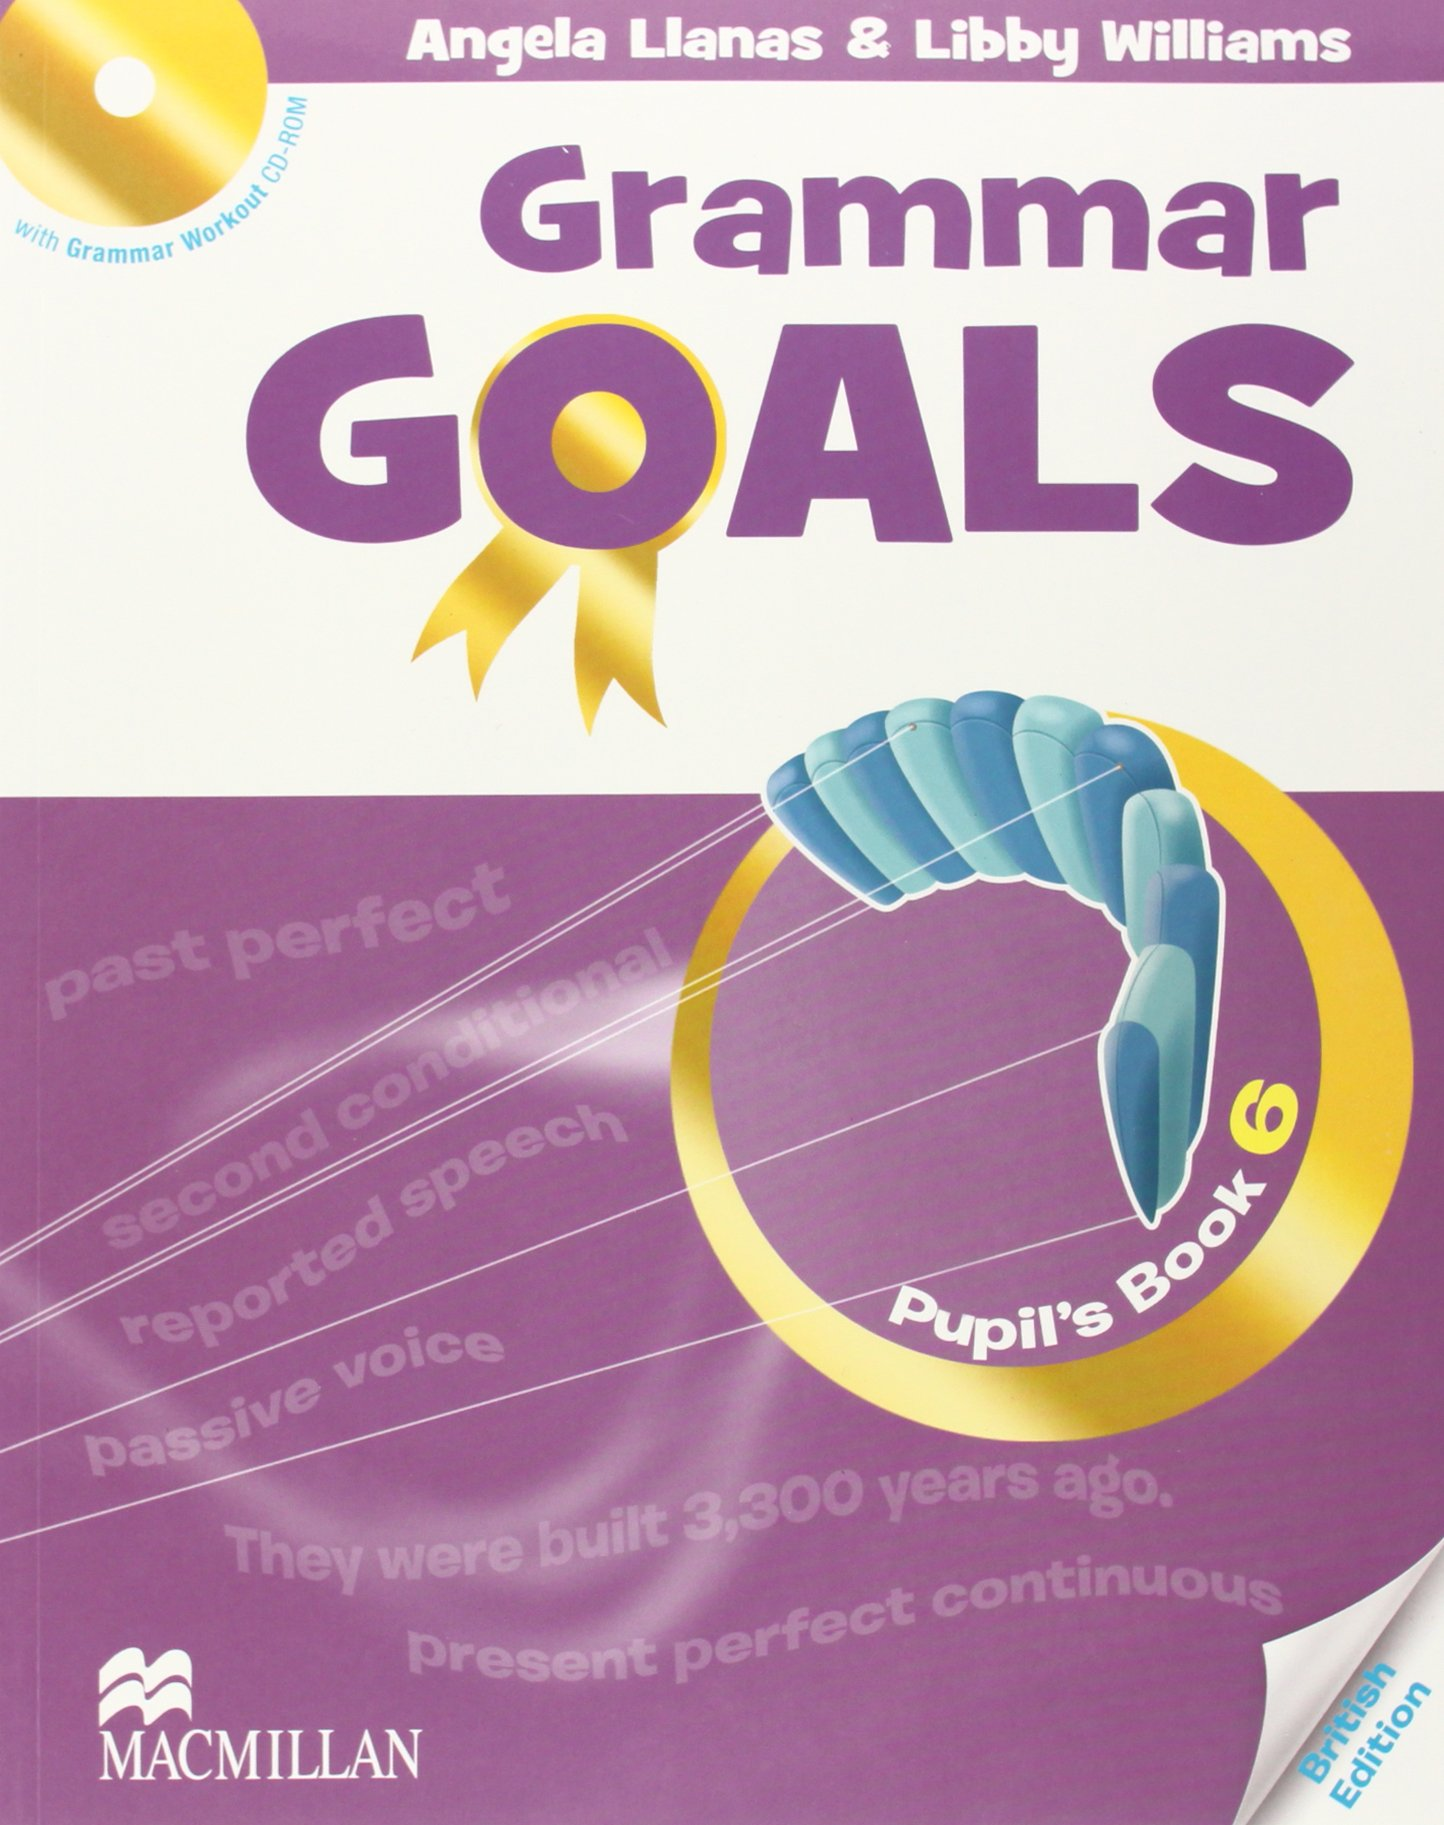 GRAMMAR GOALS 6 Pupil's Book + Grammar Workout CD-ROM